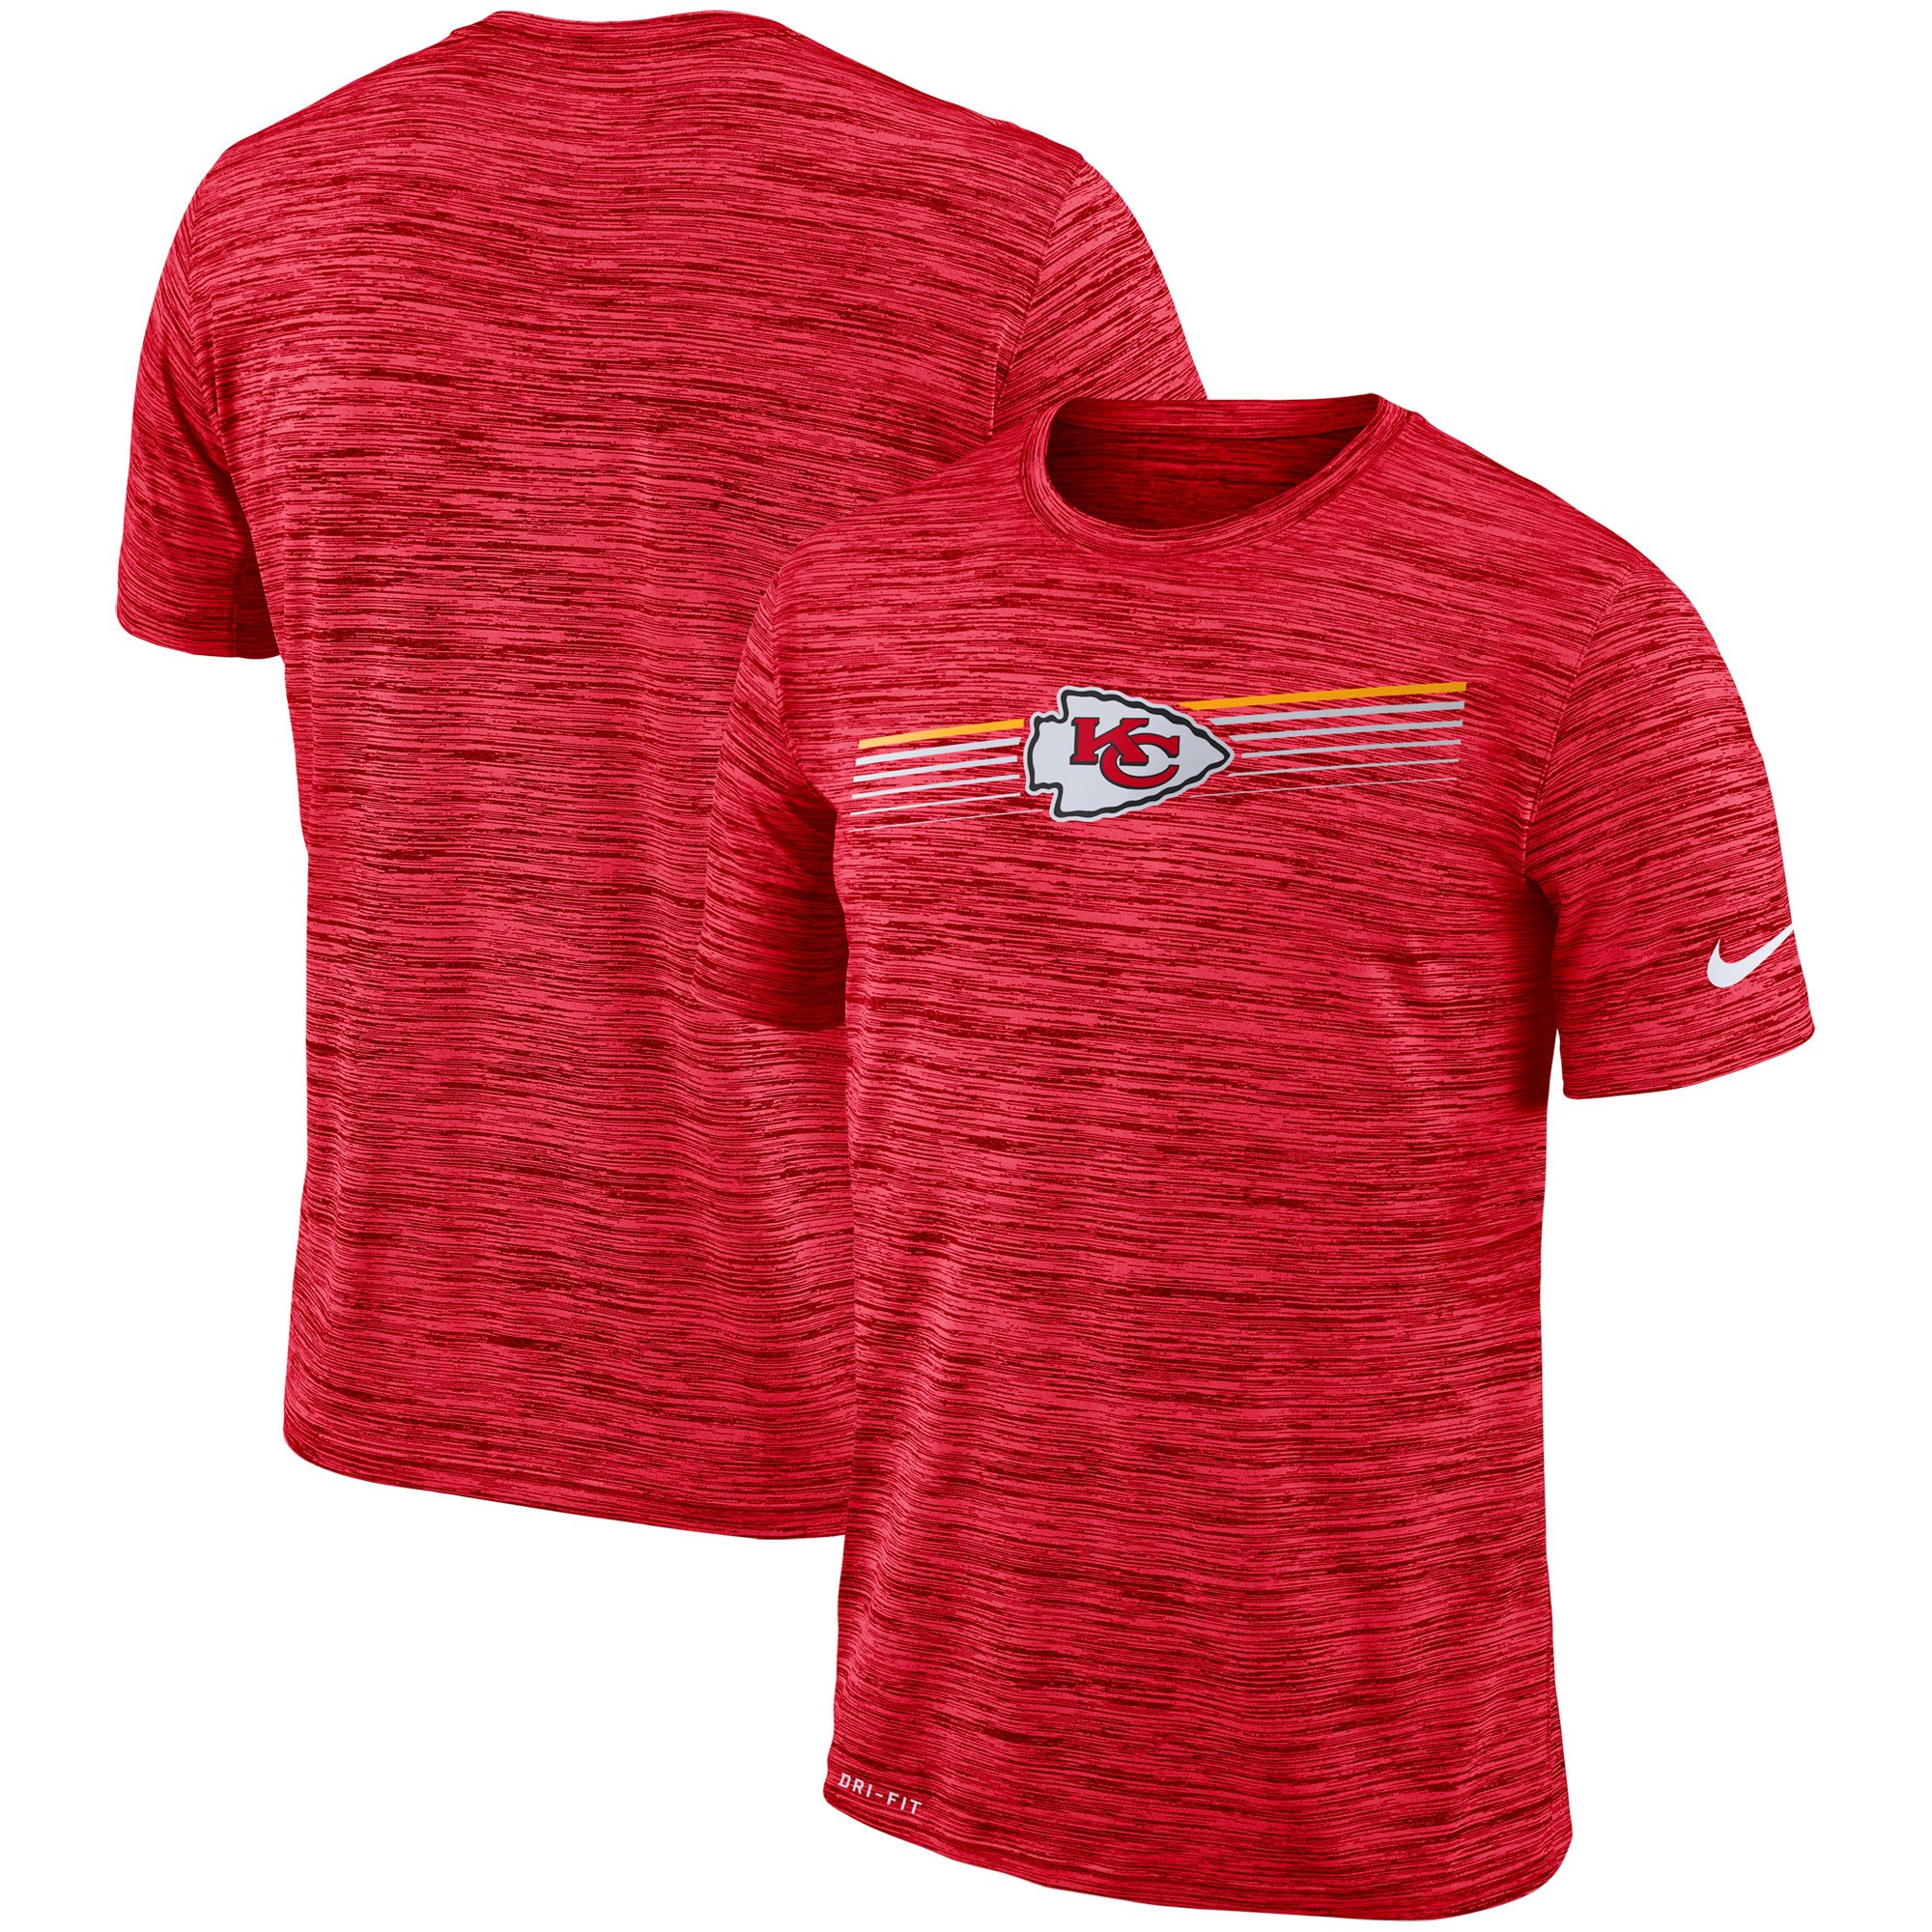 Kansas City Chiefs Nike Sideline Velocity Performance T-Shirt Heathered Red